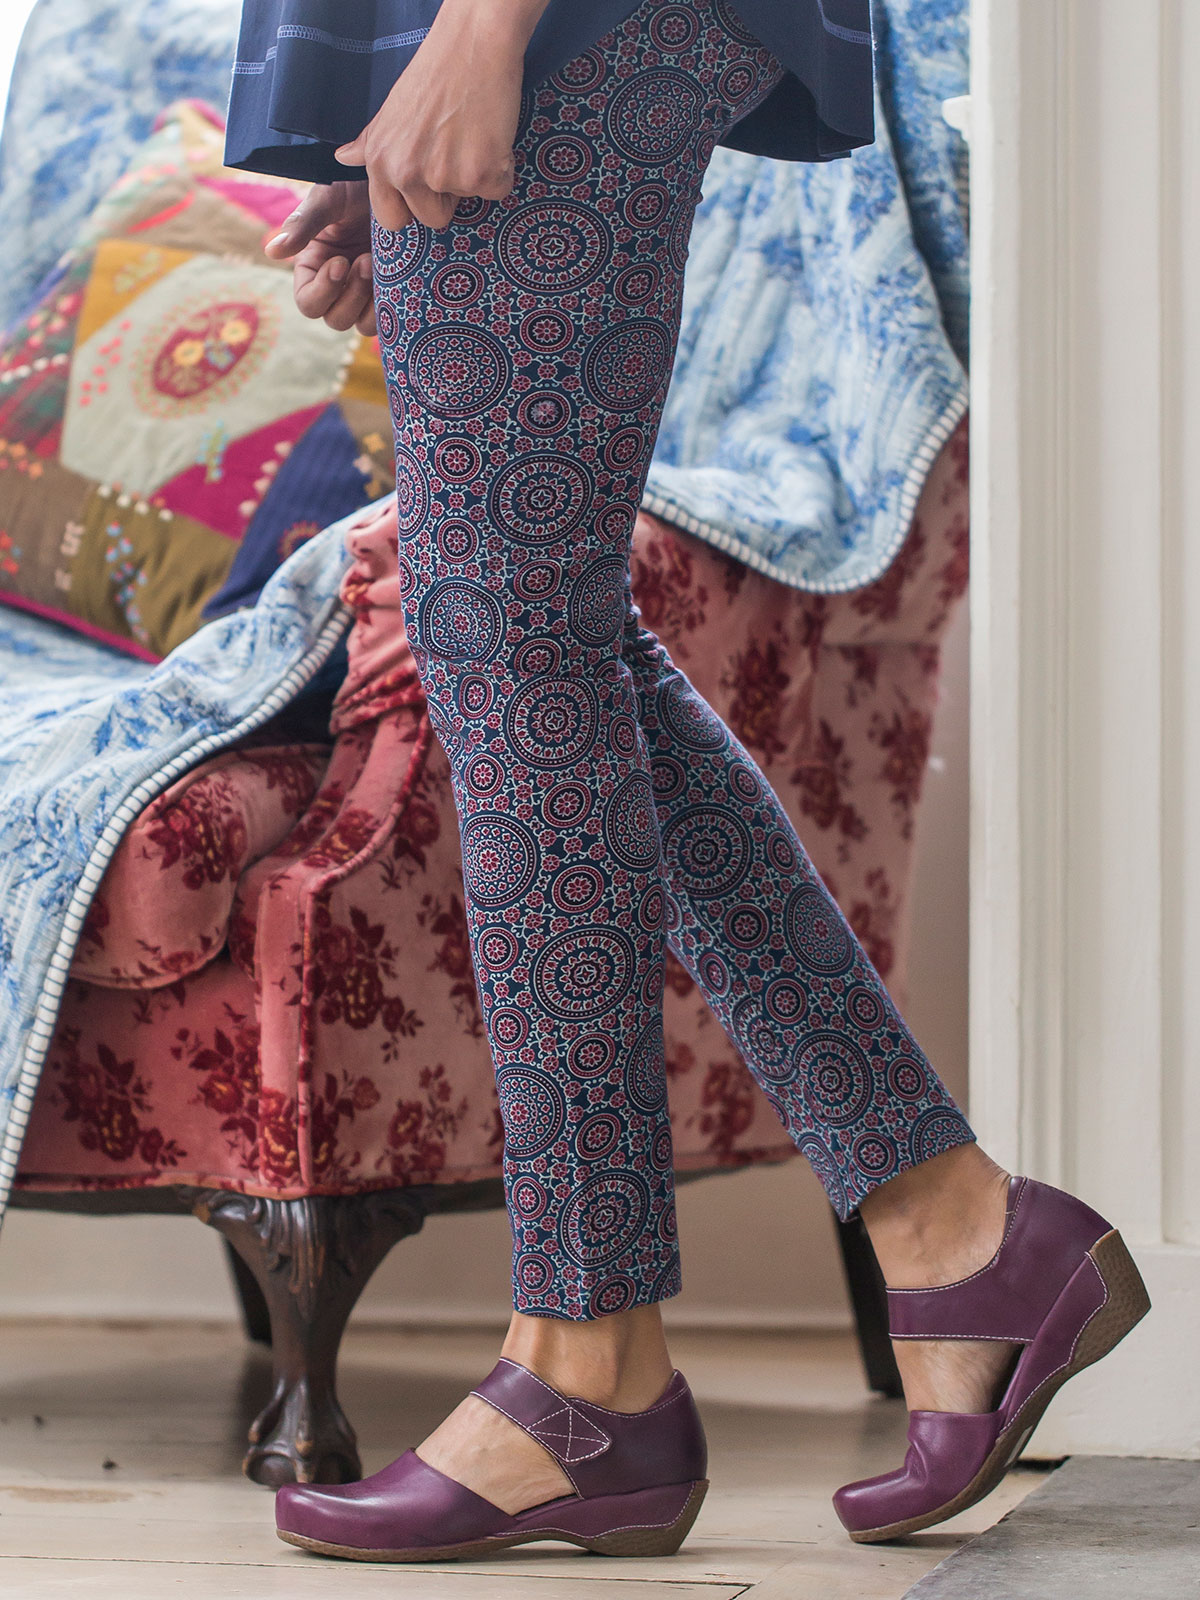 Mandala Legging Attic Sale Ladies Attic Beautiful Designs By April Cornell